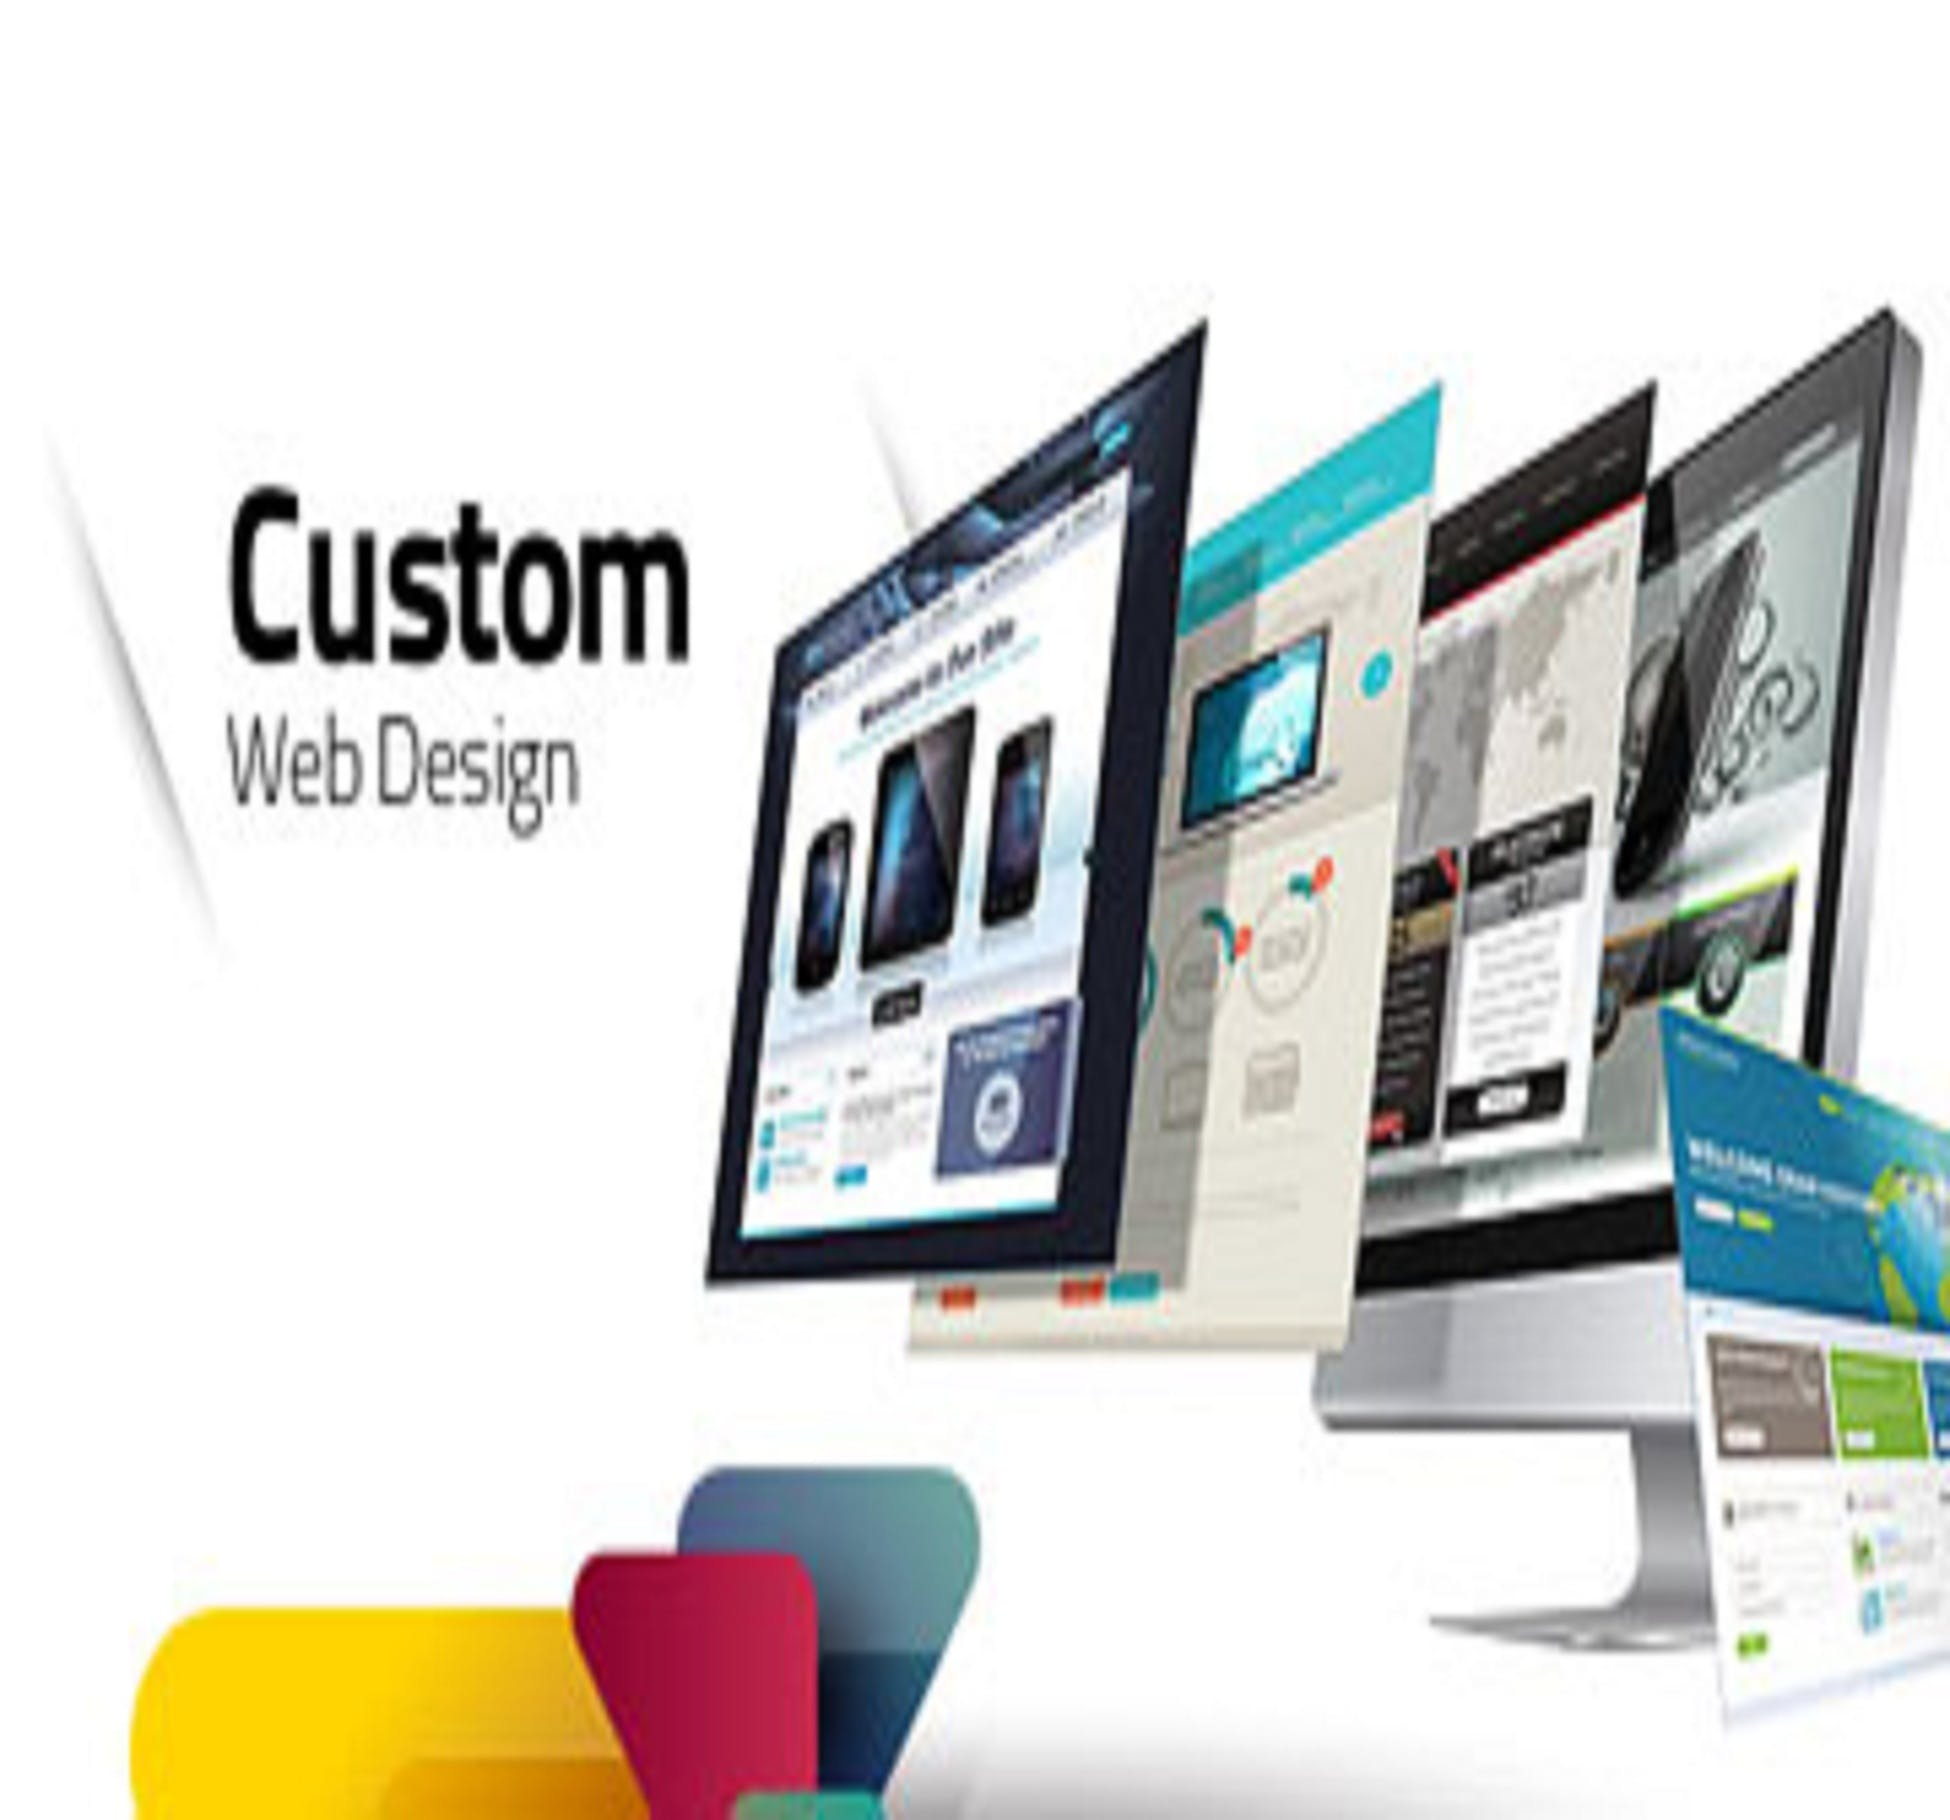 Free stock photo of Web design firm, web designing firm usa